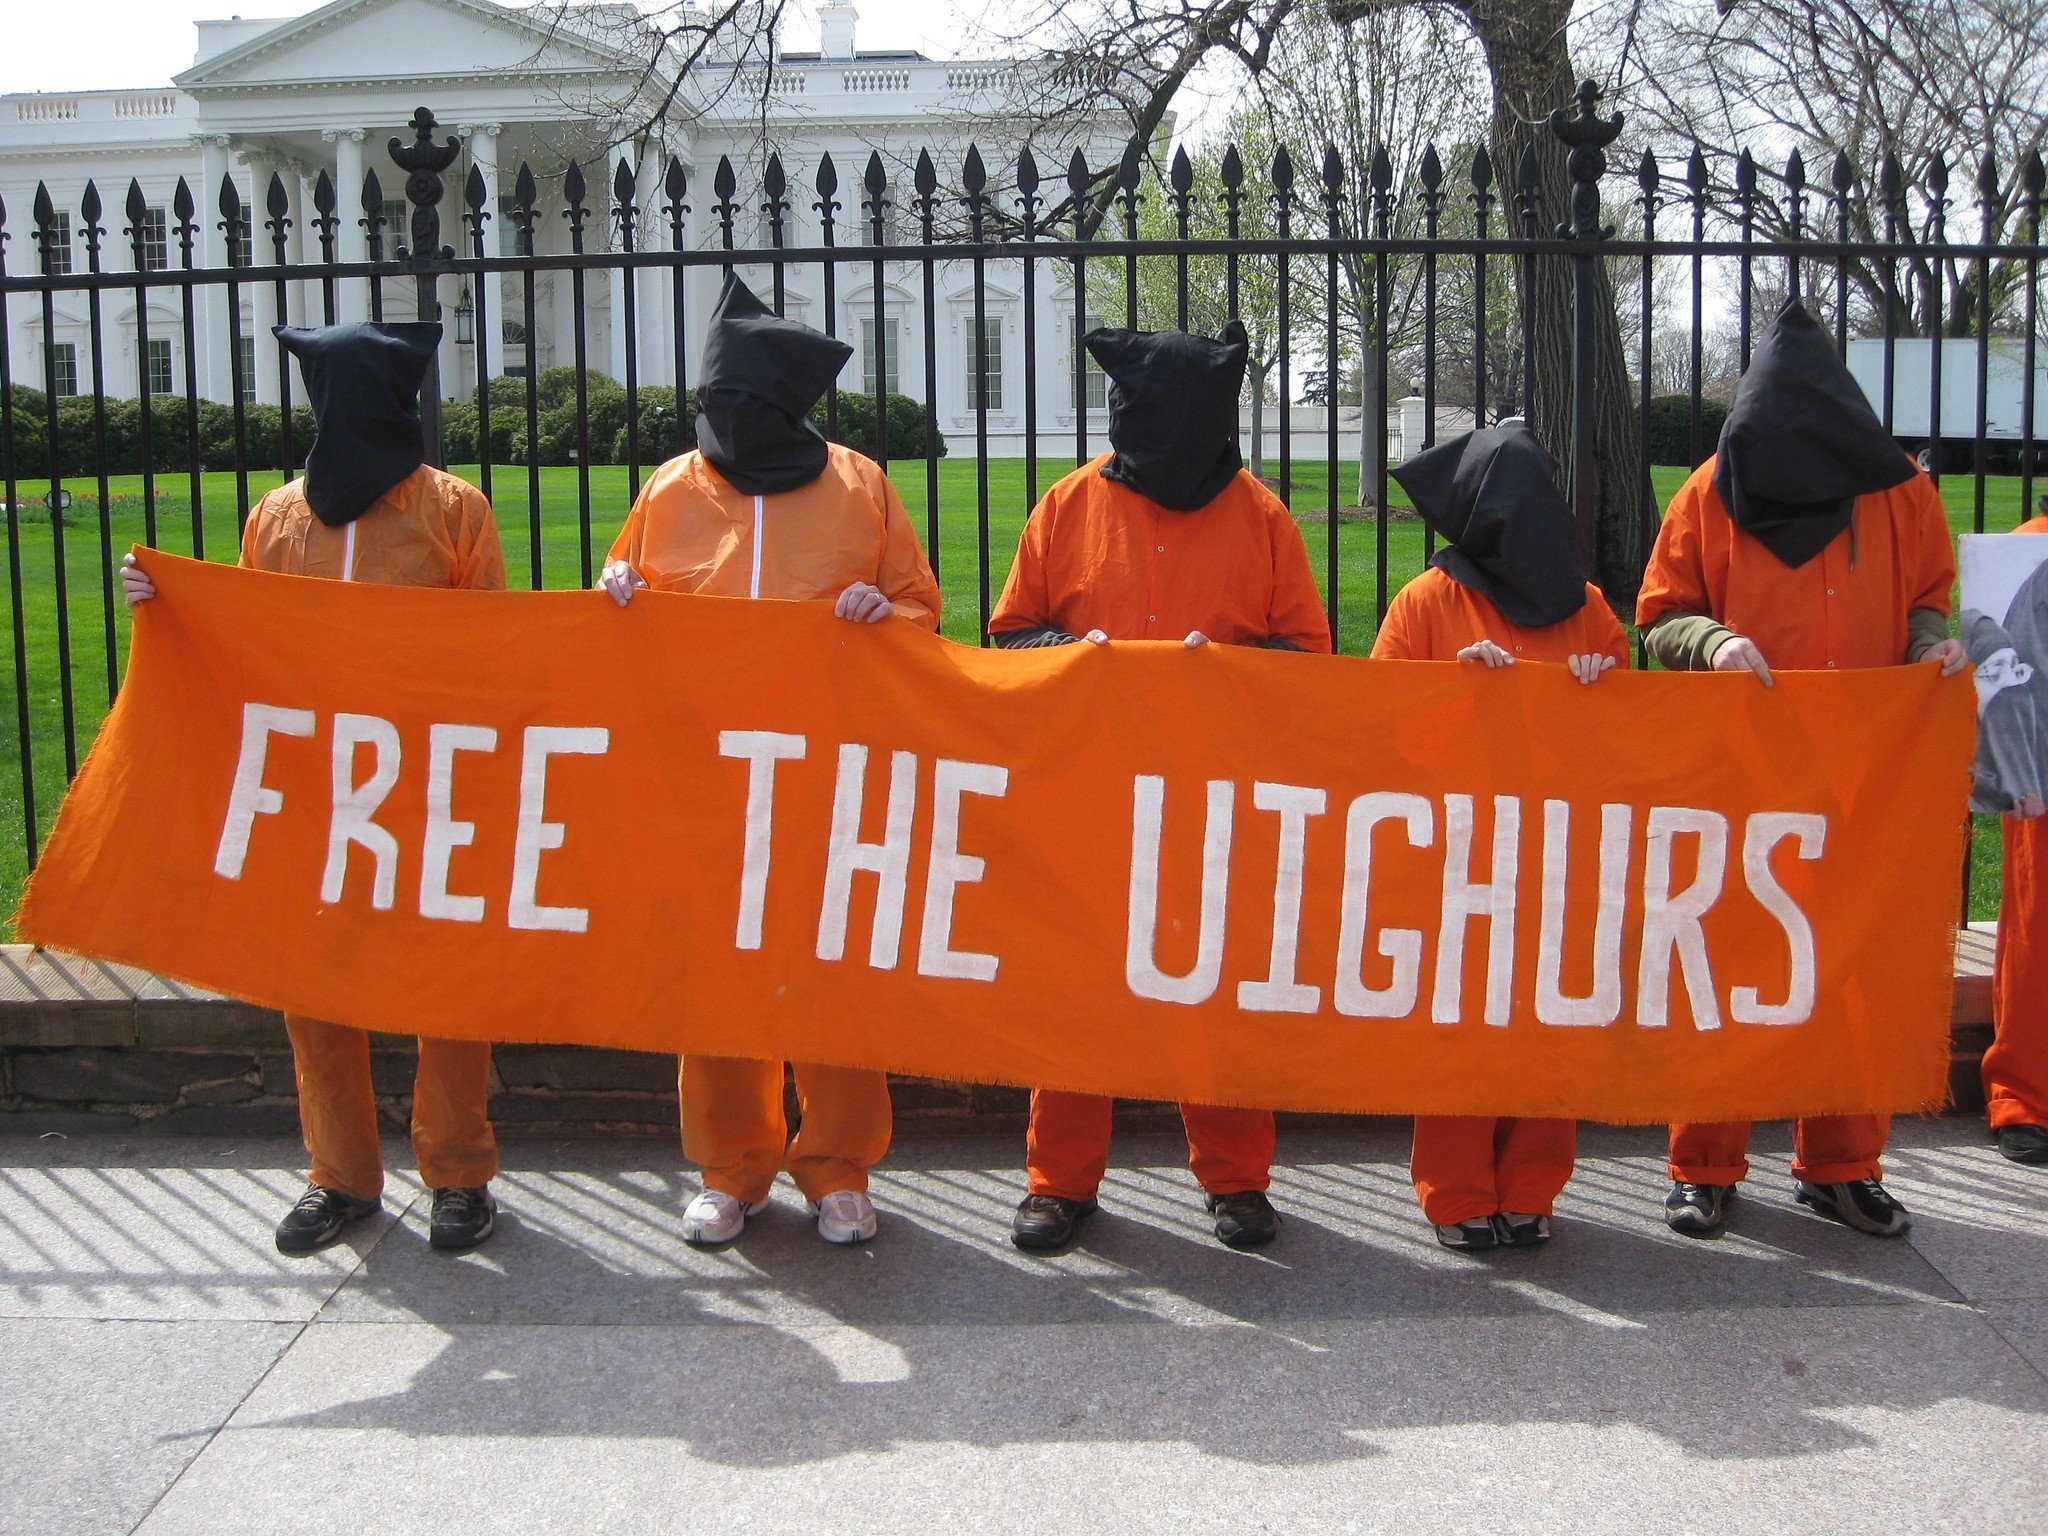 Pressure mounts on China to respect Uyghur rights